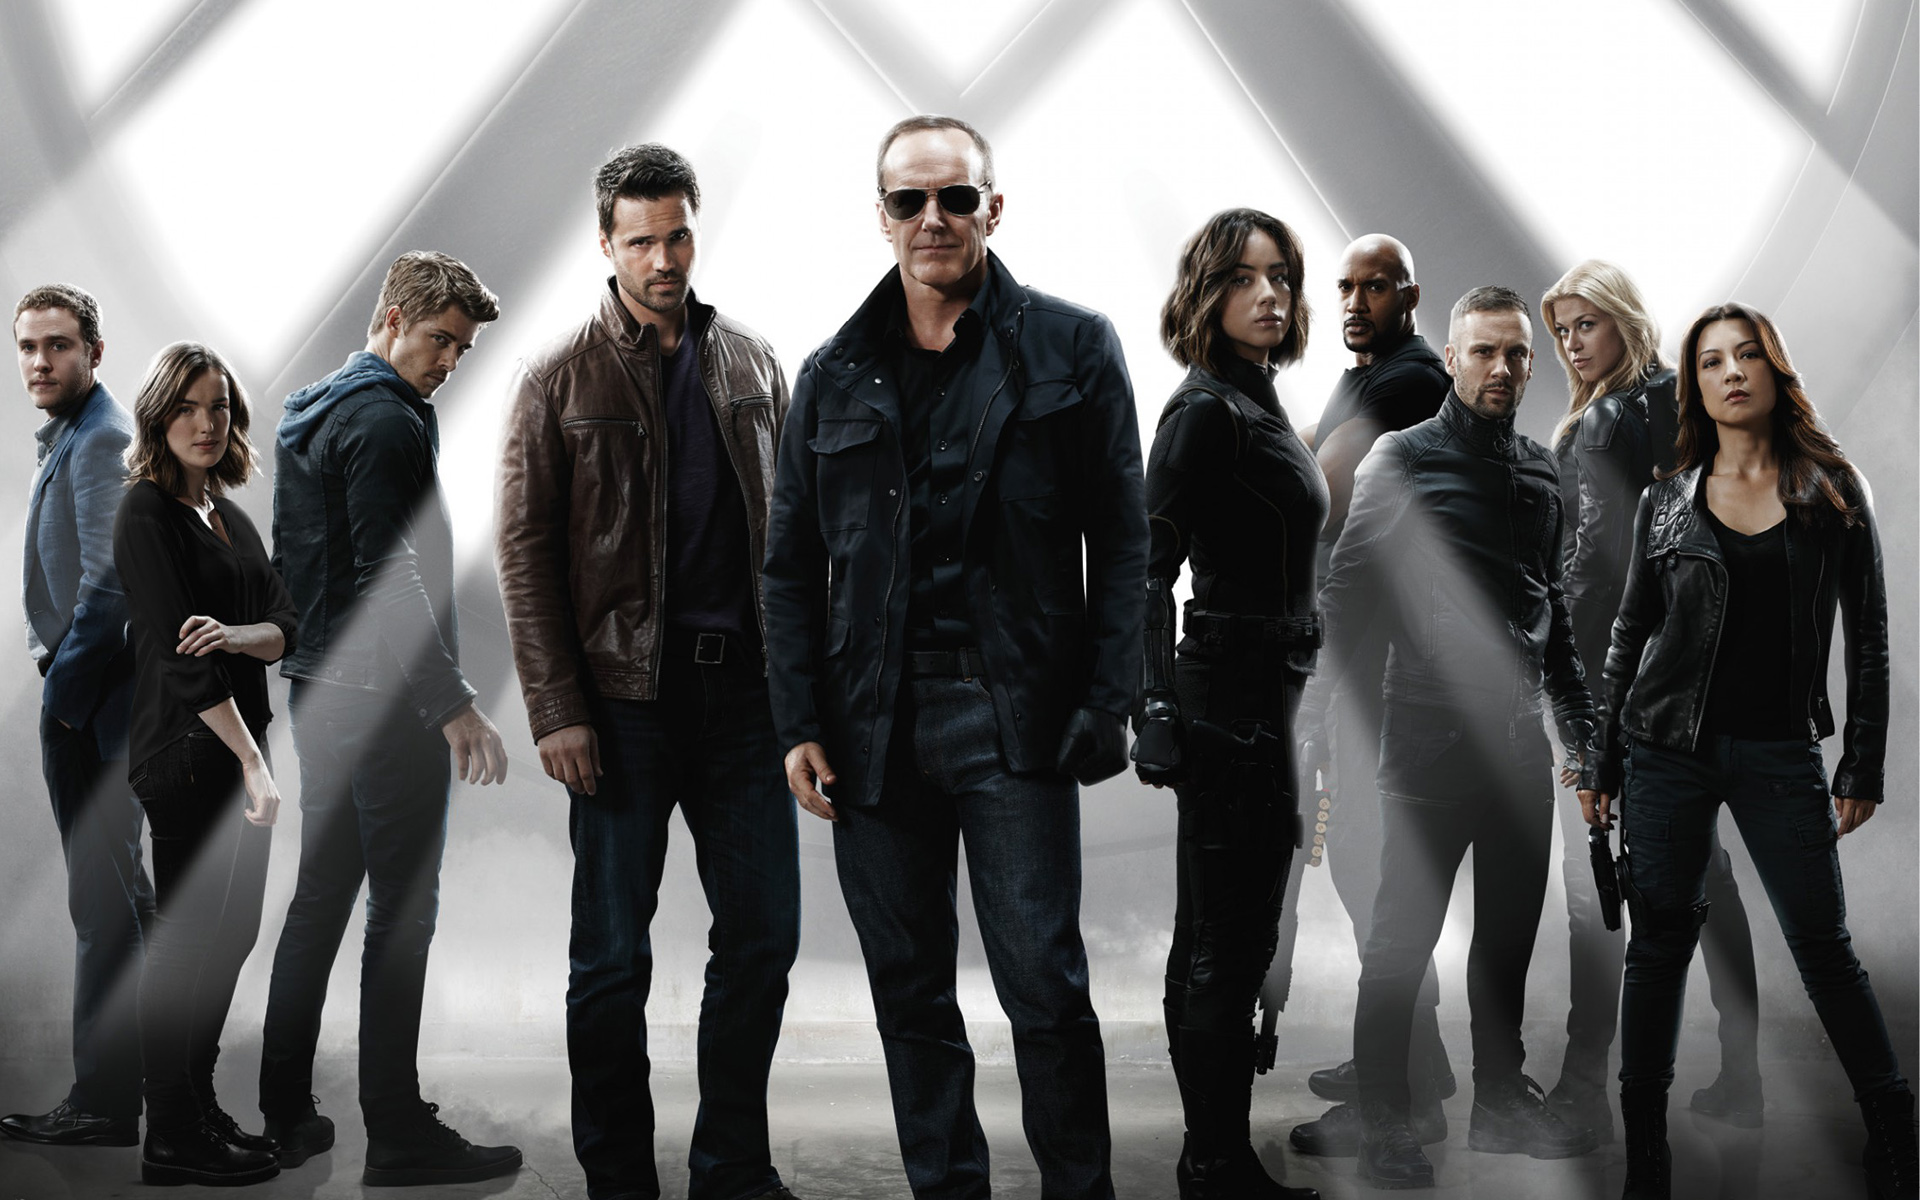 Agents of SHIELD Season 3 Wallpapers HD Wallpapers 1920x1200